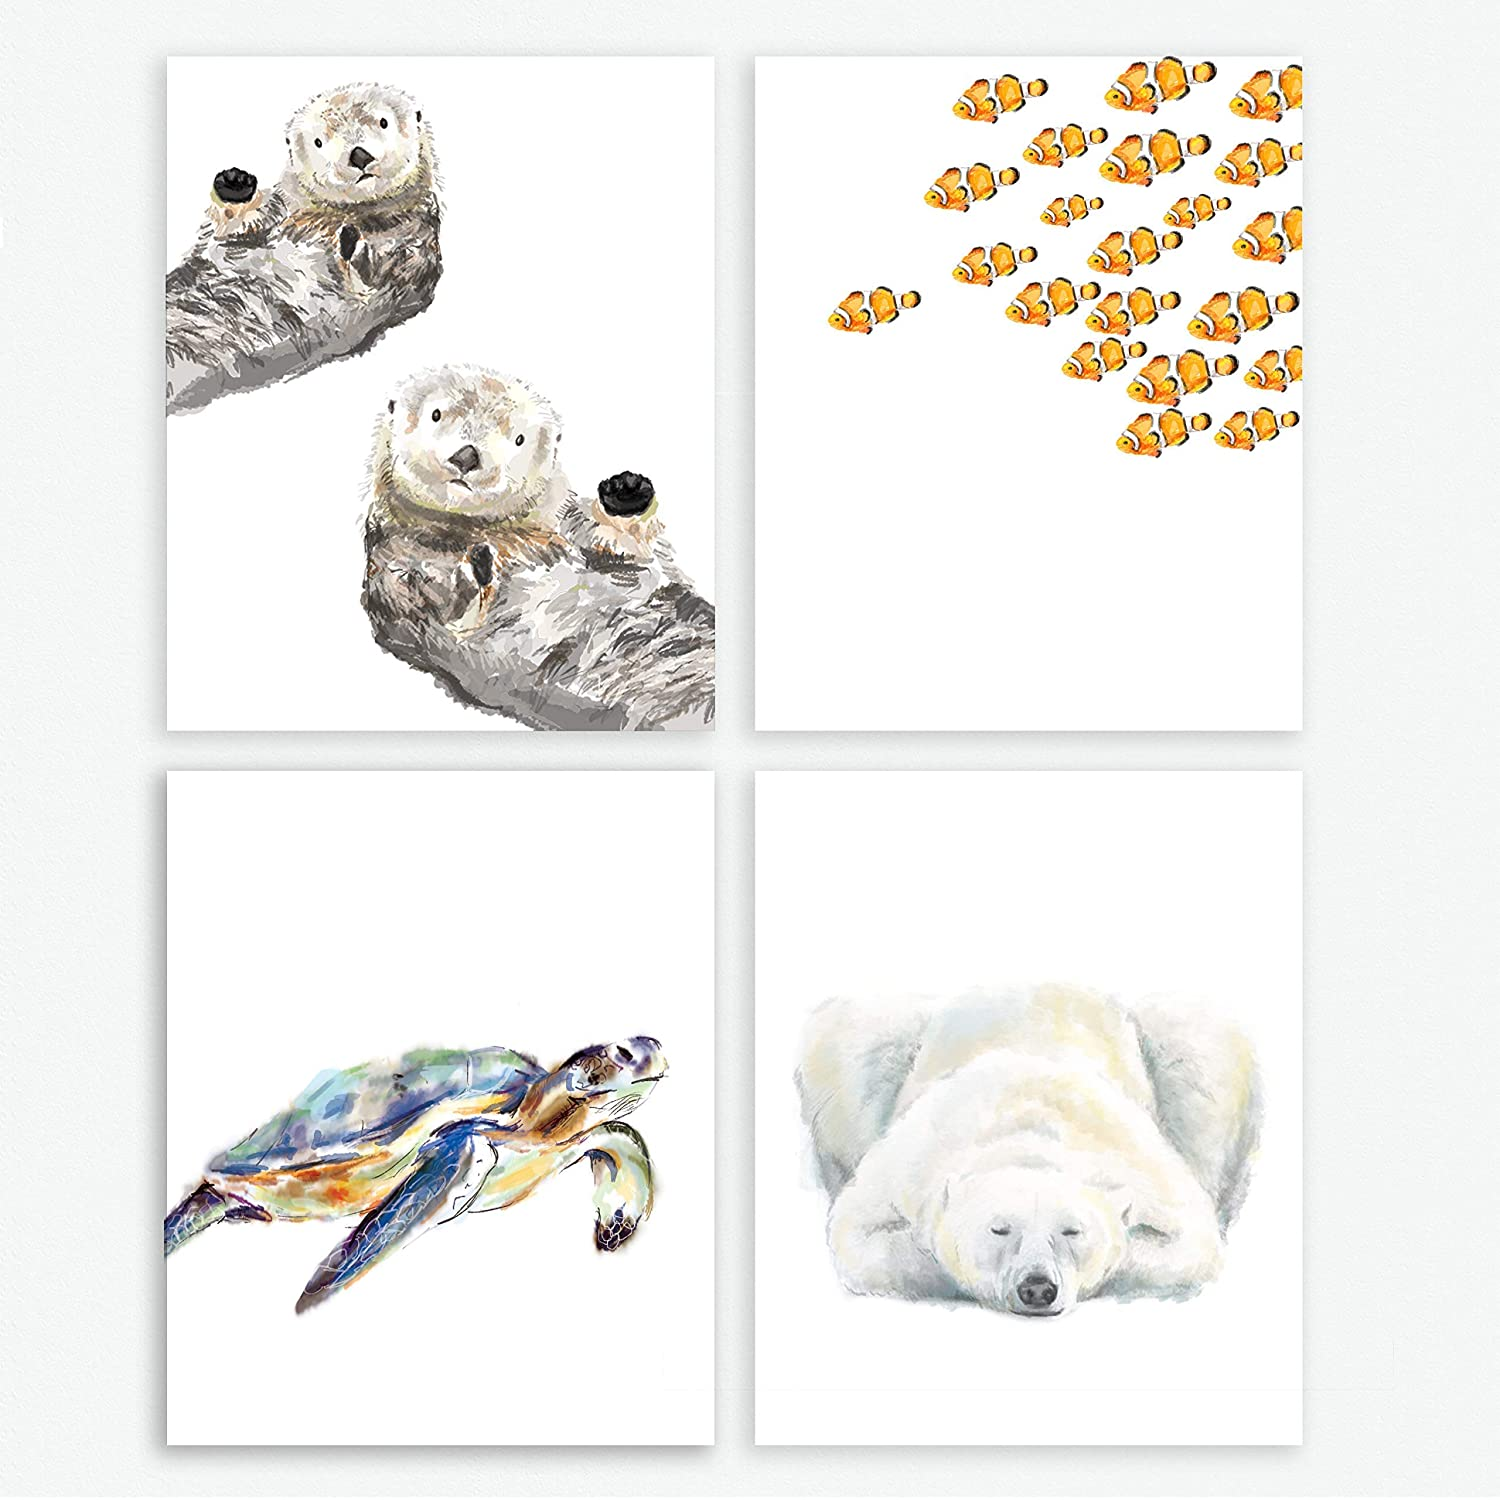 Marine Animal Themed Nursery Art Prints, Set of 4, Baby Animal Prints, Childrens Room Decor Wall Art, Baby Gender Neutral, Turtle Clownfish Sea Otter Polar Bear